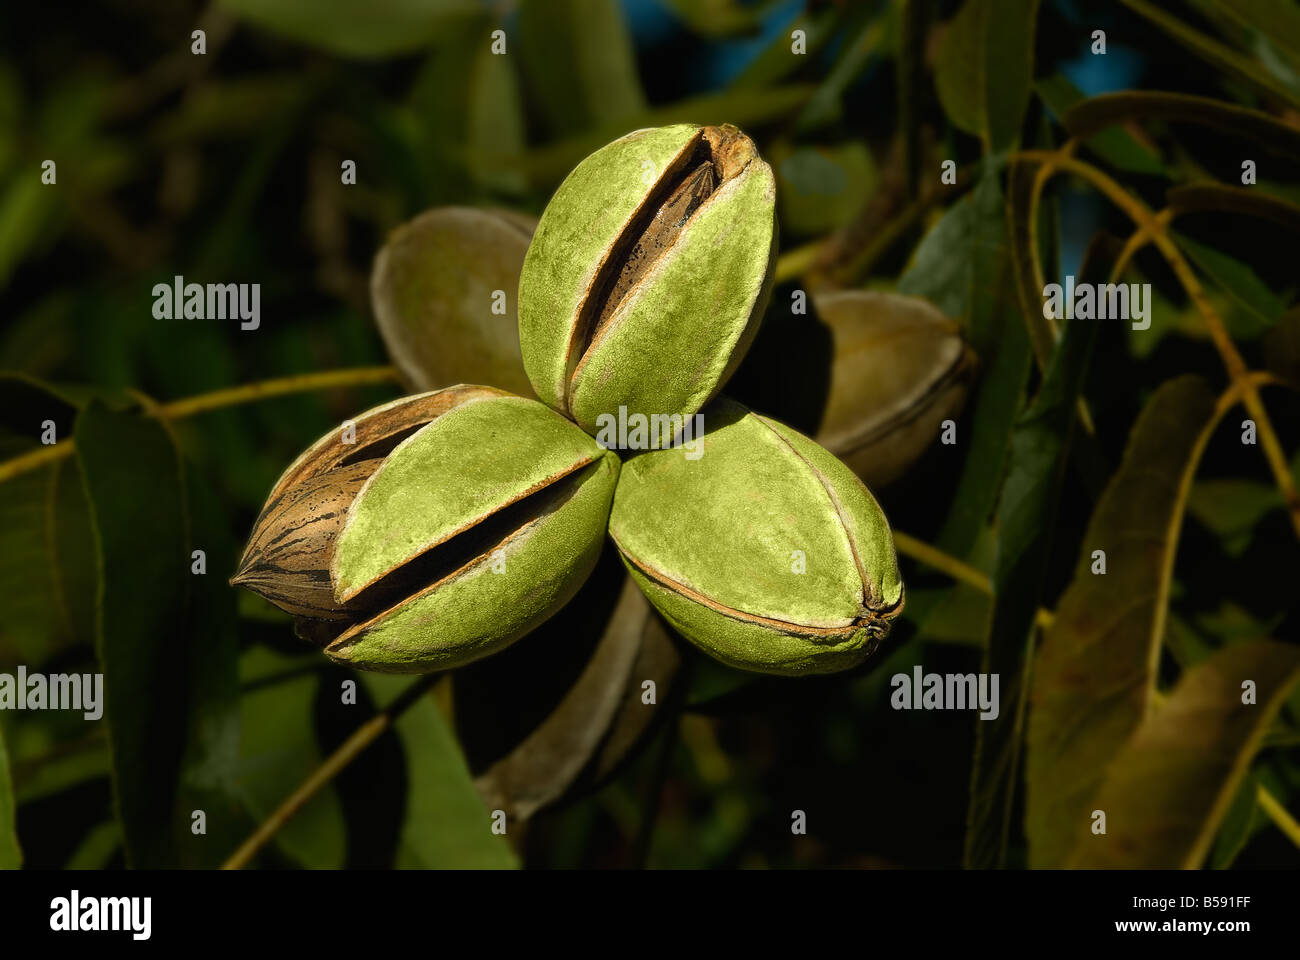 The pecan Carya illinoinensis or illinoensis is a species of hickory tree. - Stock Image